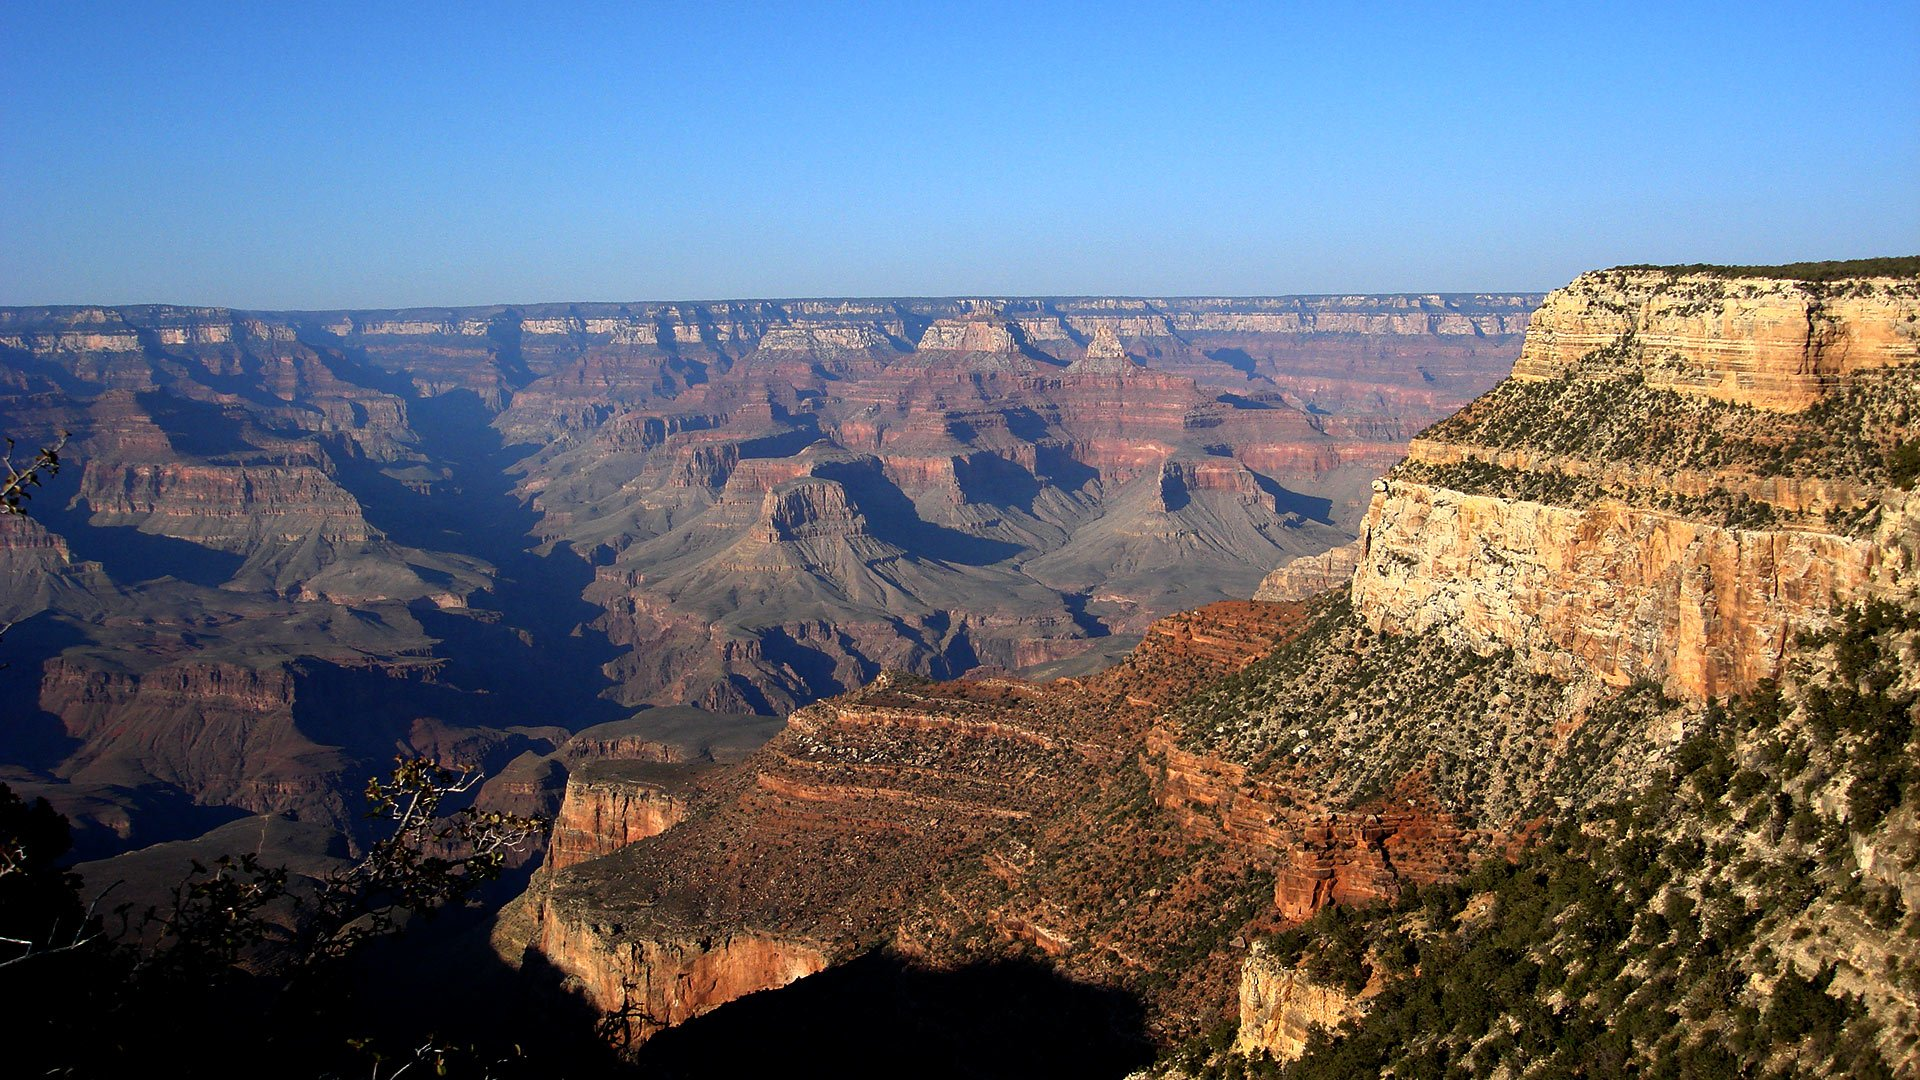 A view of the breathtaking expanse of the Grand Canyon.